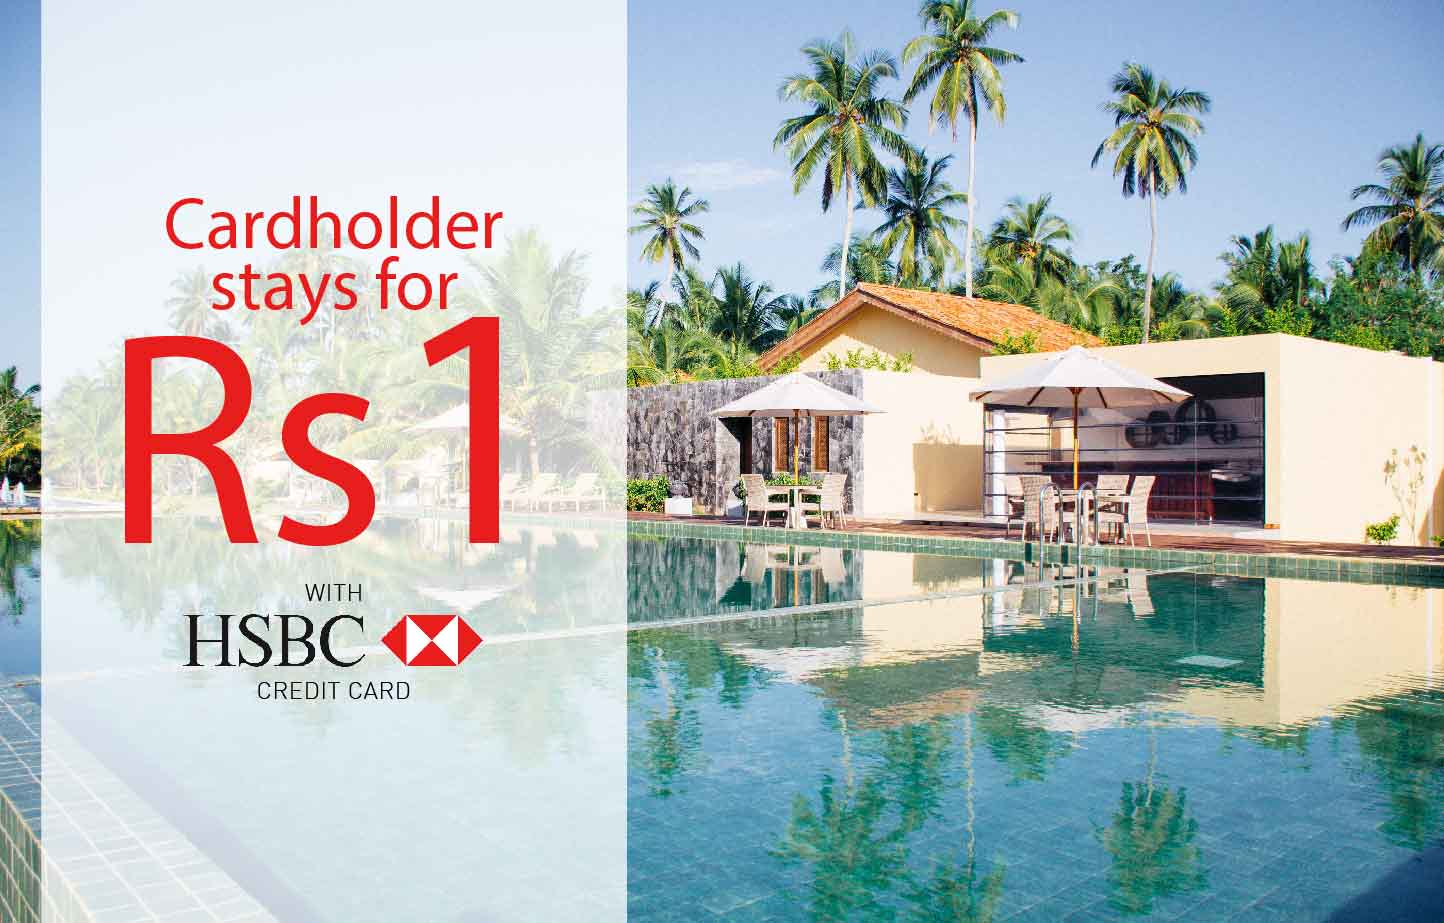 CARDHOLDER STAYS FOR RS.1 WITH HSBC CREDIT CARD